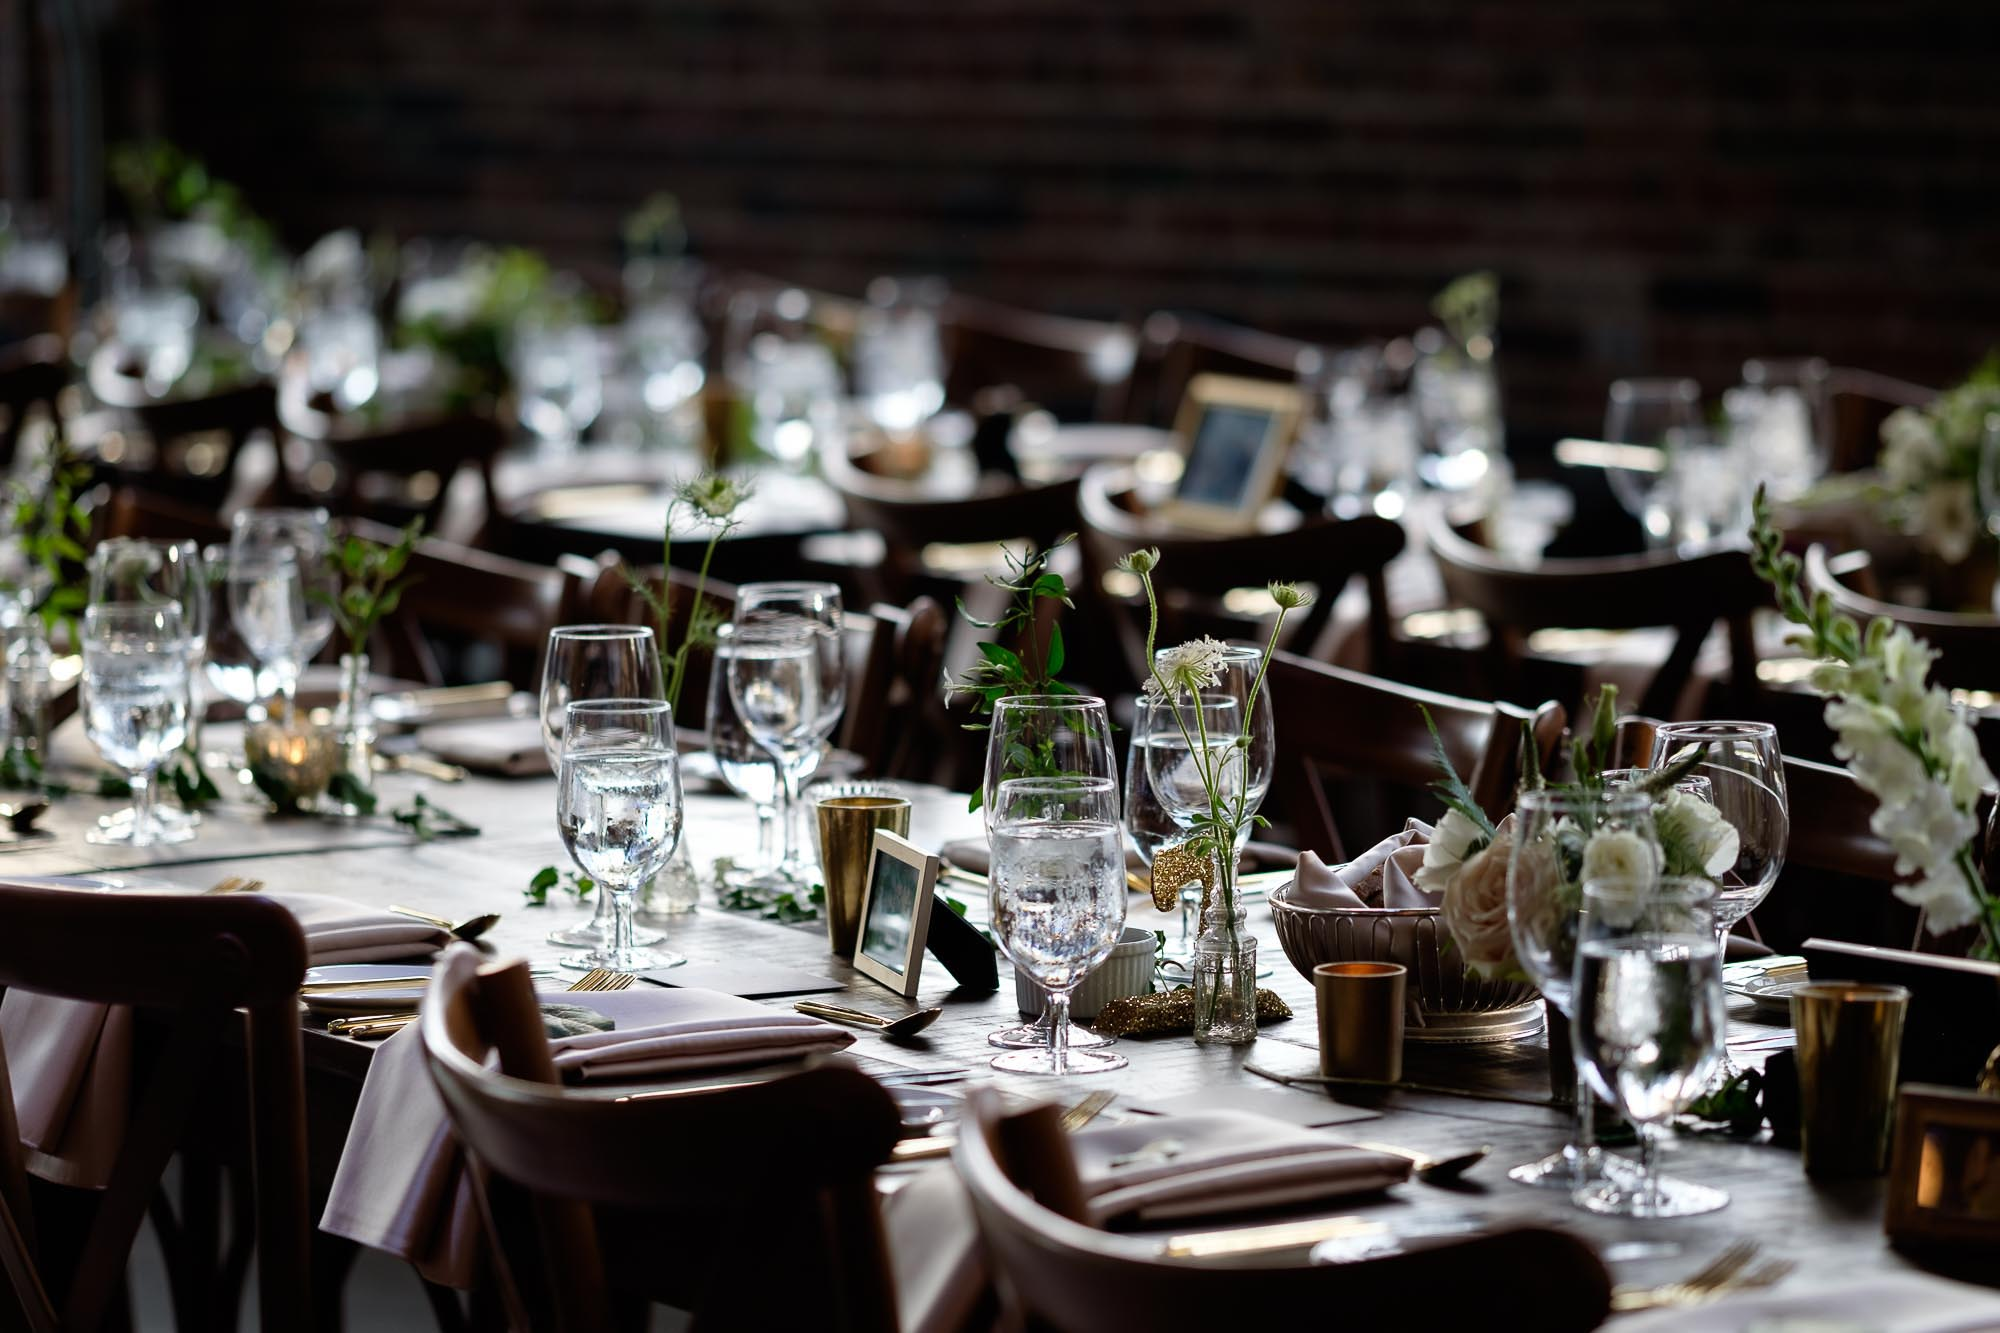 A detail photograph of the table settings from a wedding at SteamWhistle Brewery in downtown Toronto.